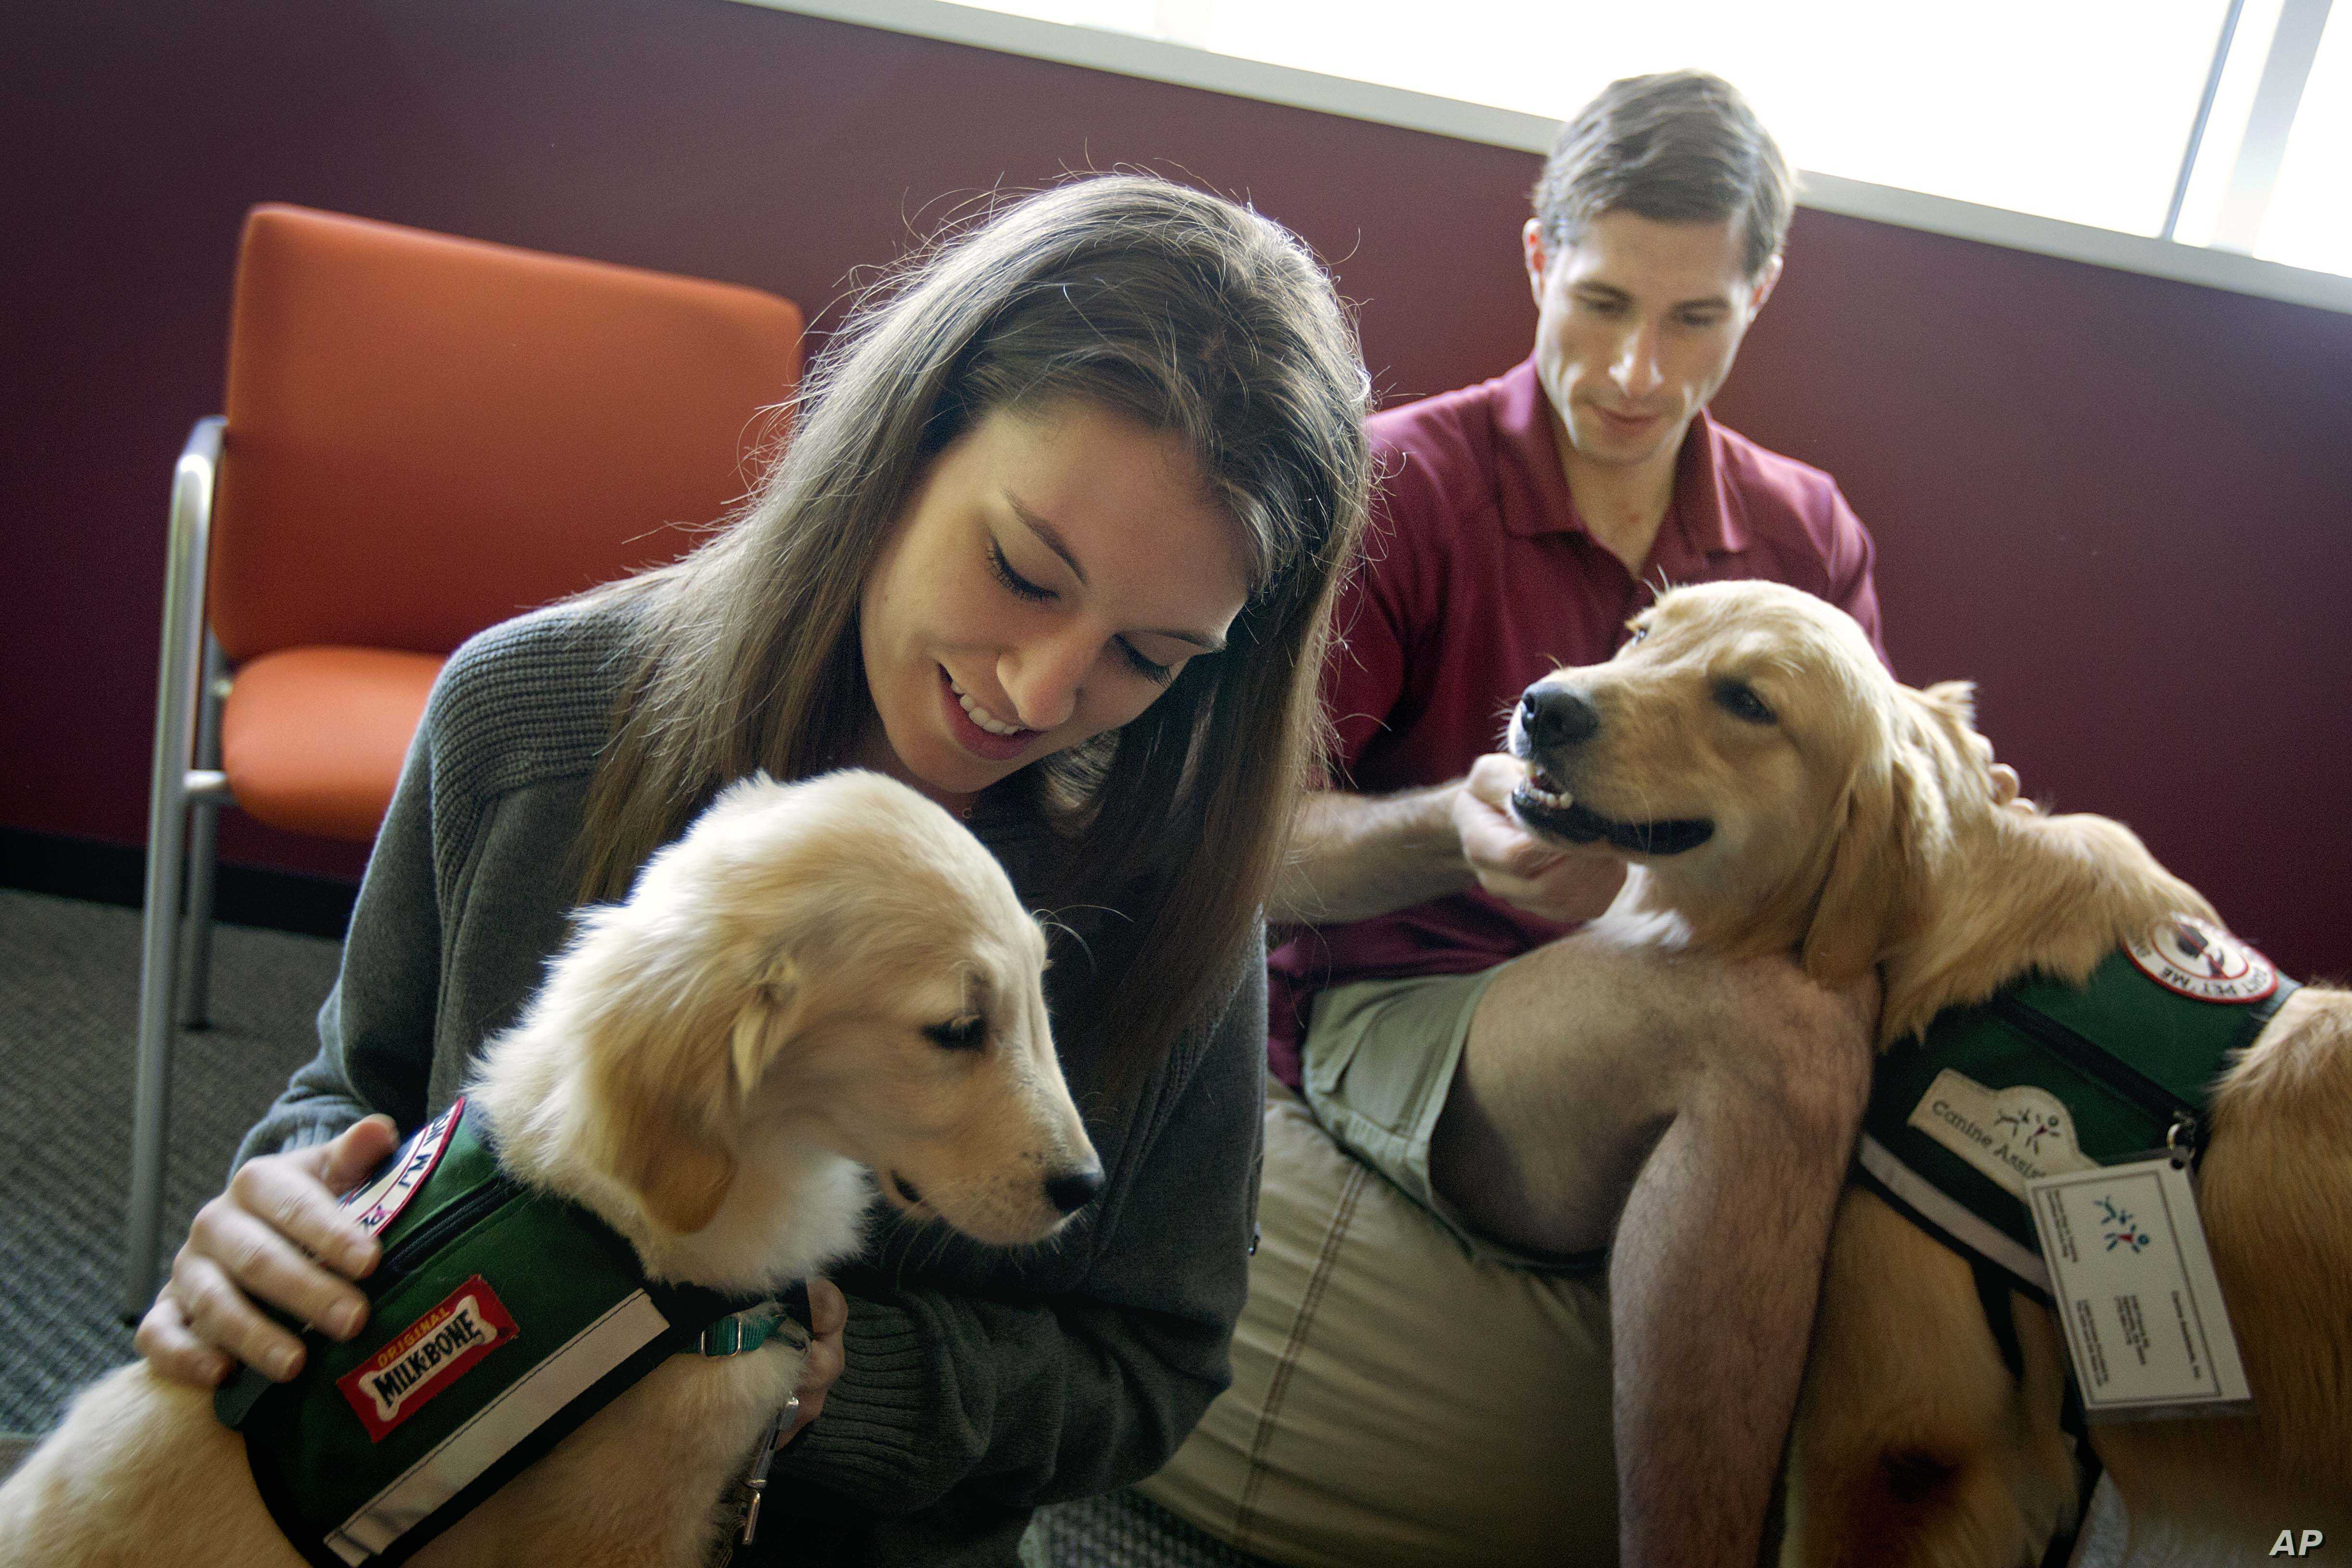 Law students Josh Richey, right, and Lindsay Stewart play with Hooch, a 19-month-old golden retriever and Stanley, a 4-month-old golden retriever, in between final exams at Emory University in Atlanta.